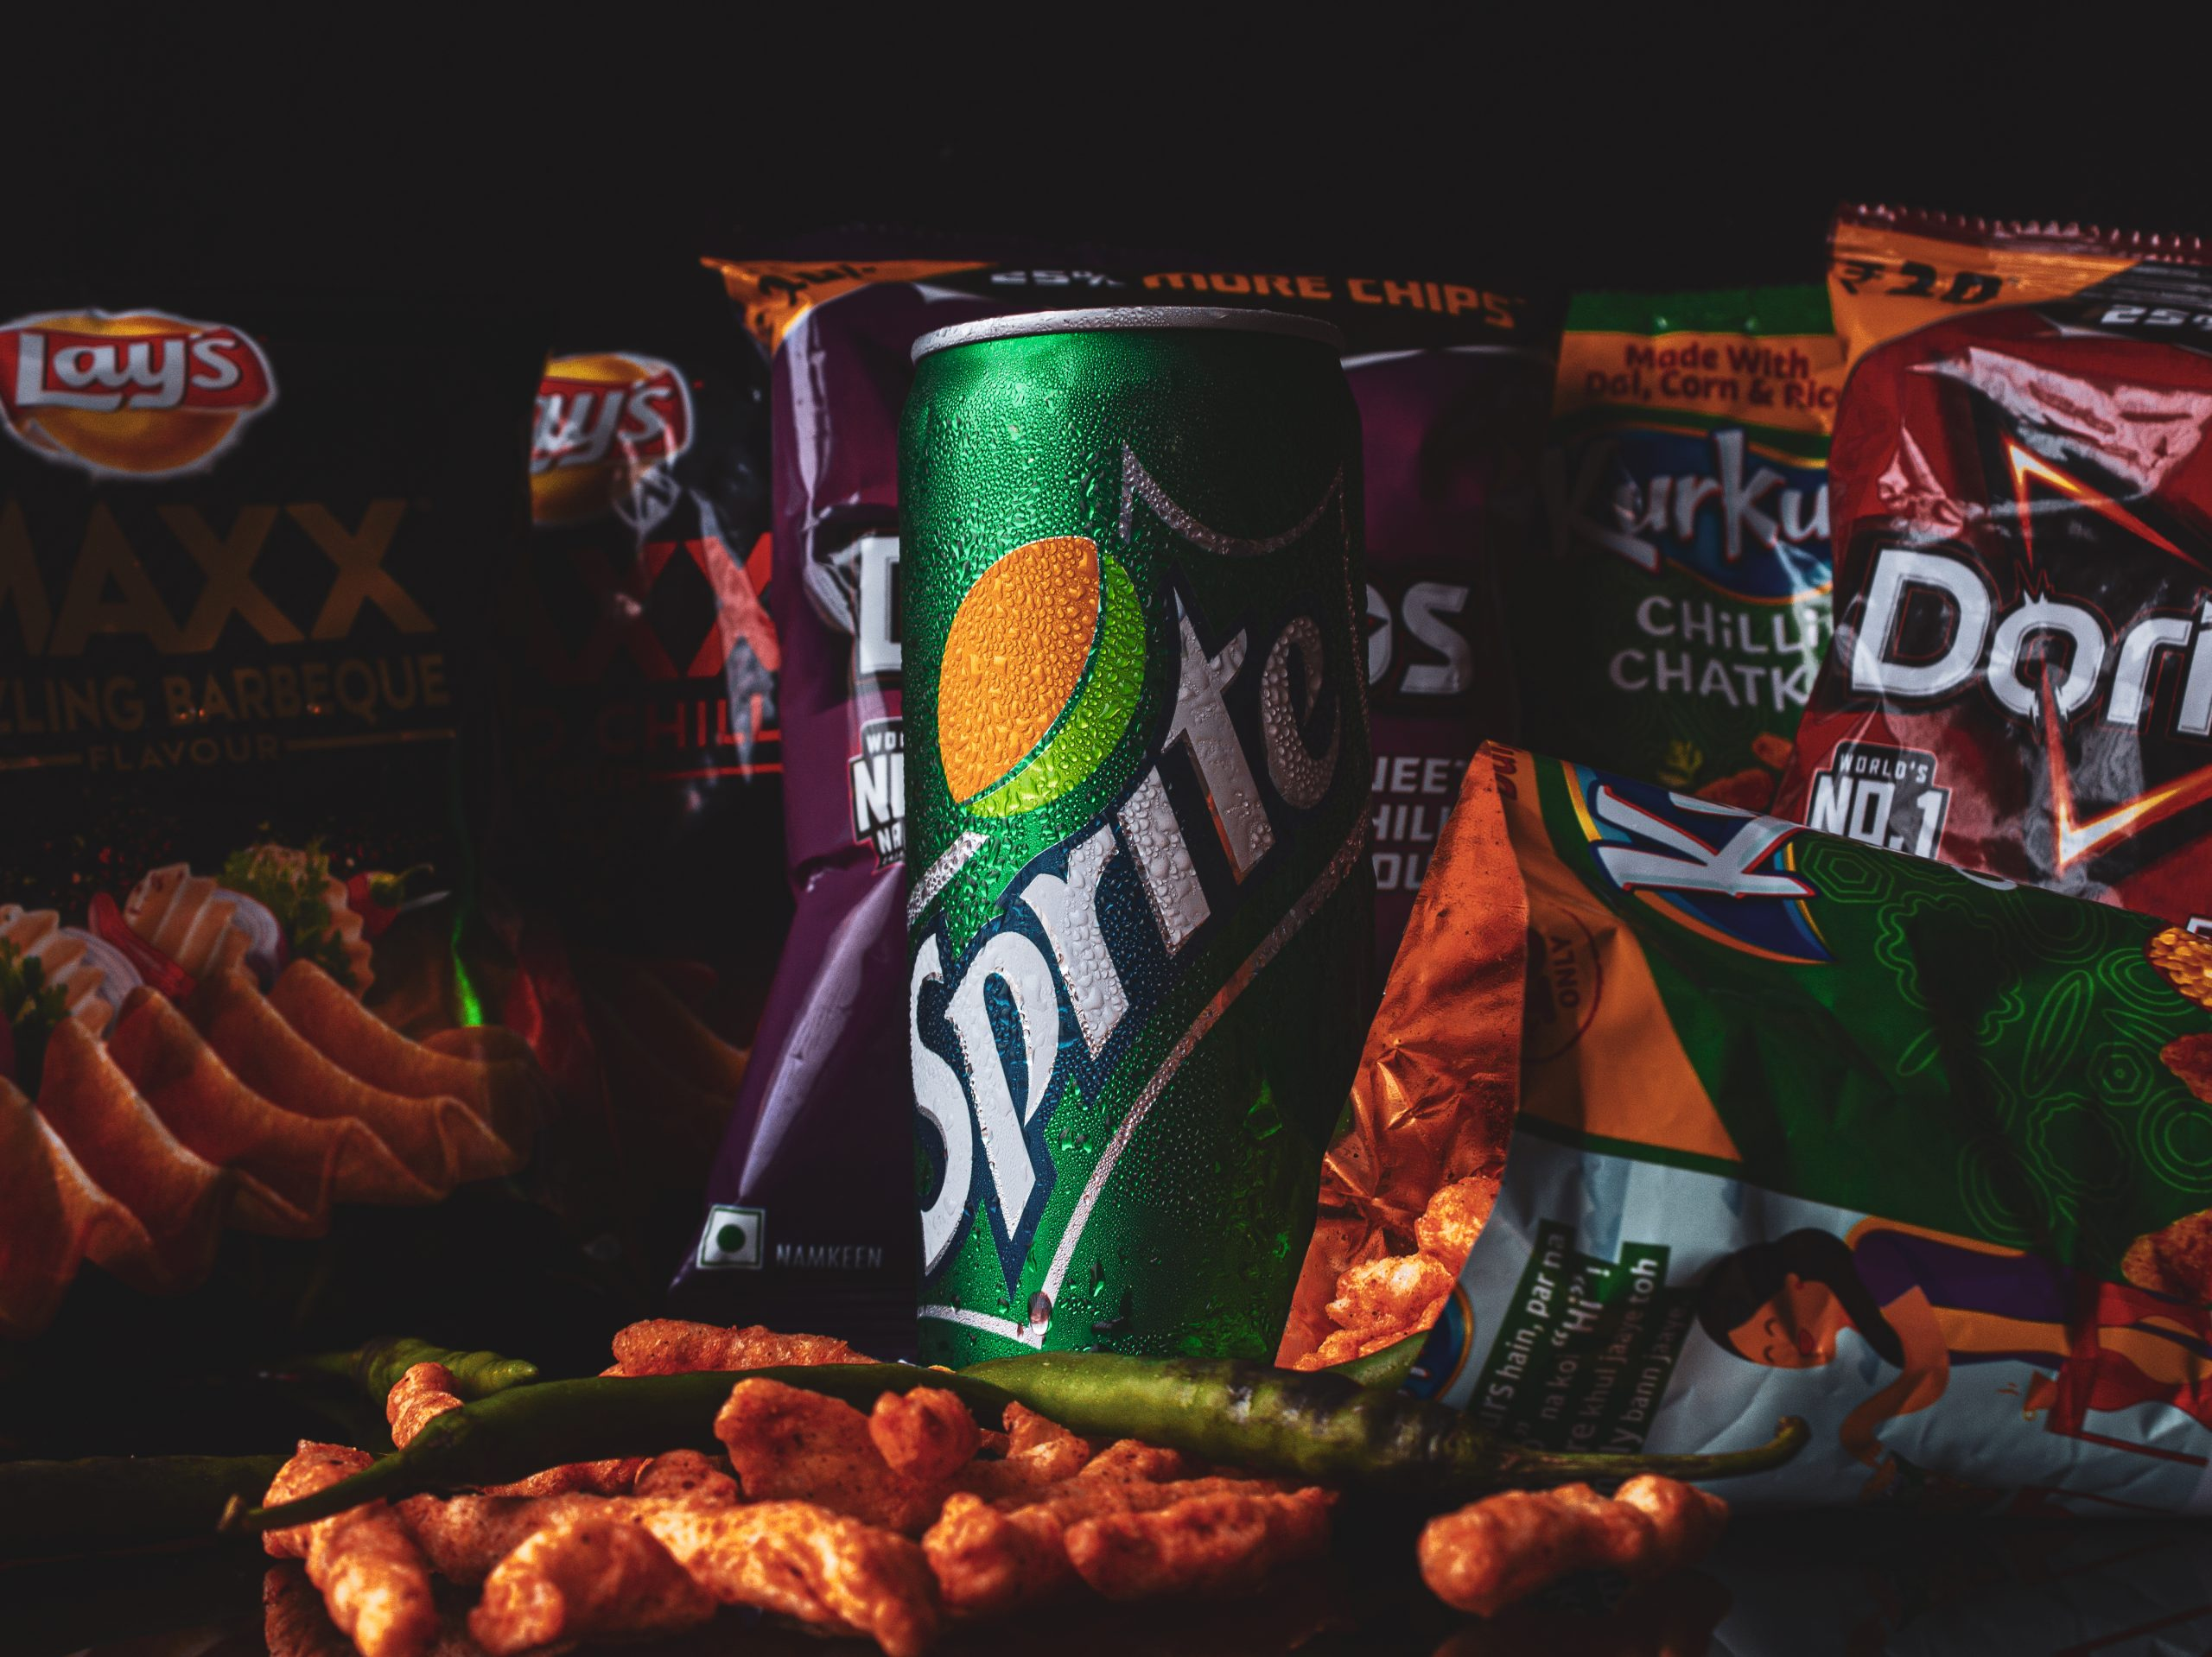 Soft drink and Snacks